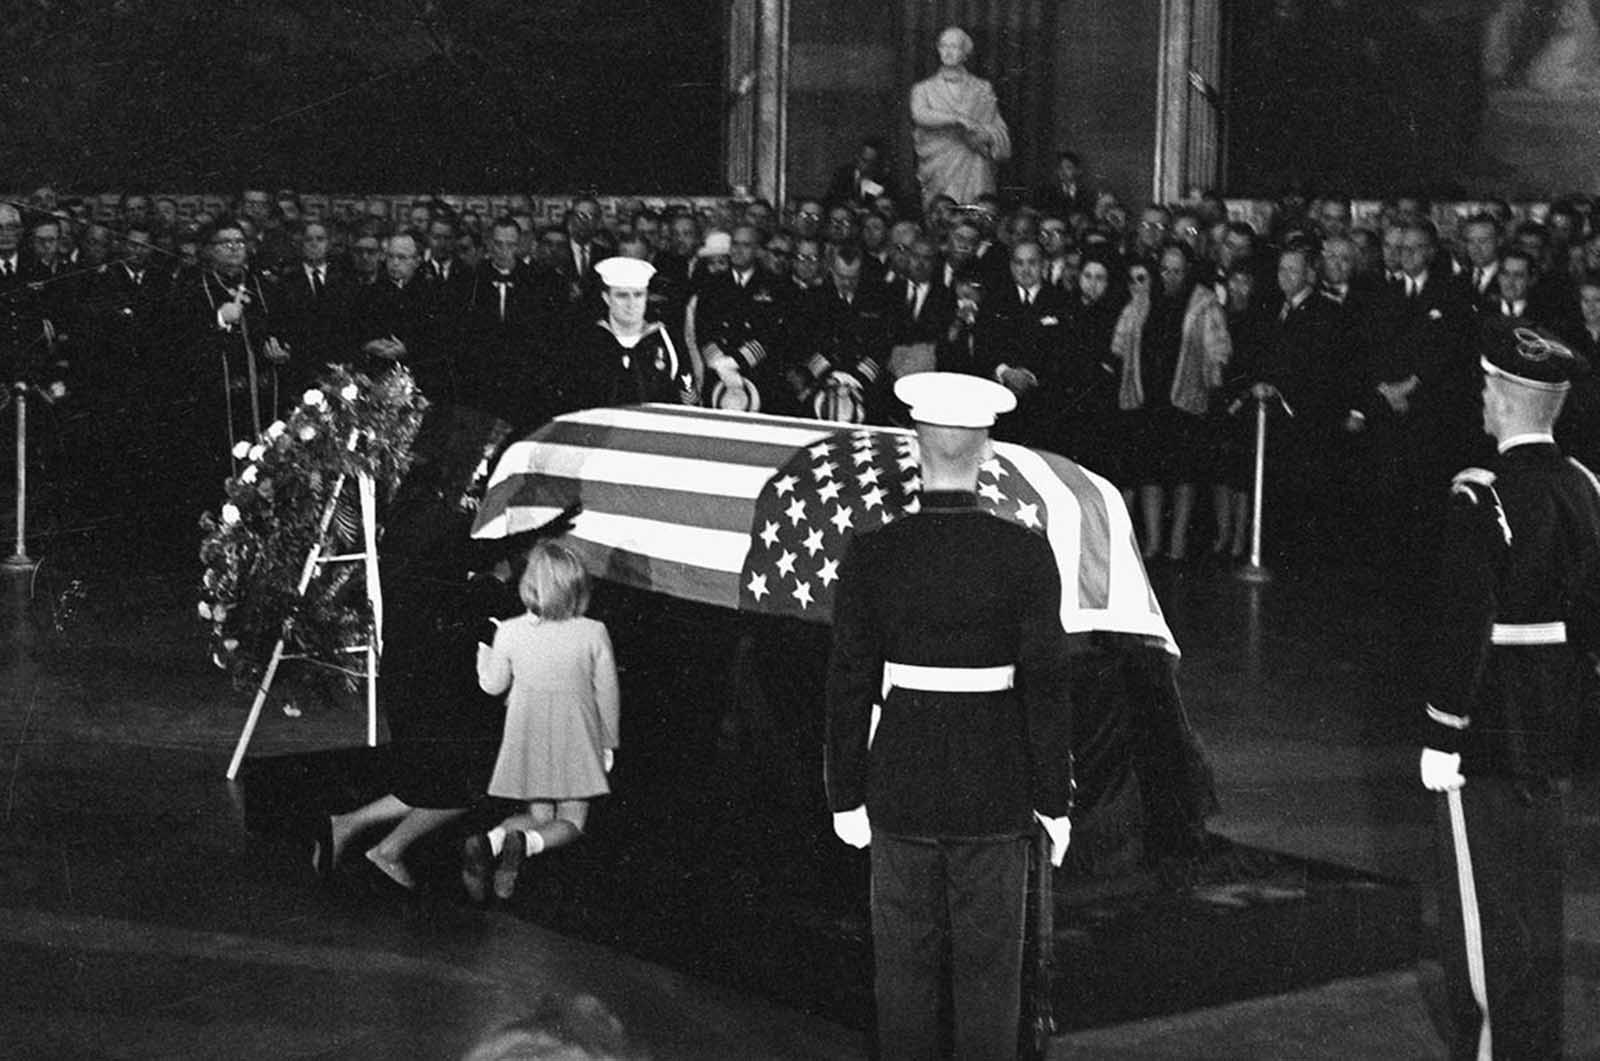 Widow Jacqueline Kennedy kneels and reaches out to touch the casket of her slain husband, John F. Kennedy, in the rotunda of the Capitol in Washington, District of Columbia, on November 24, 1963. Their daughter Caroline kneels beside her.